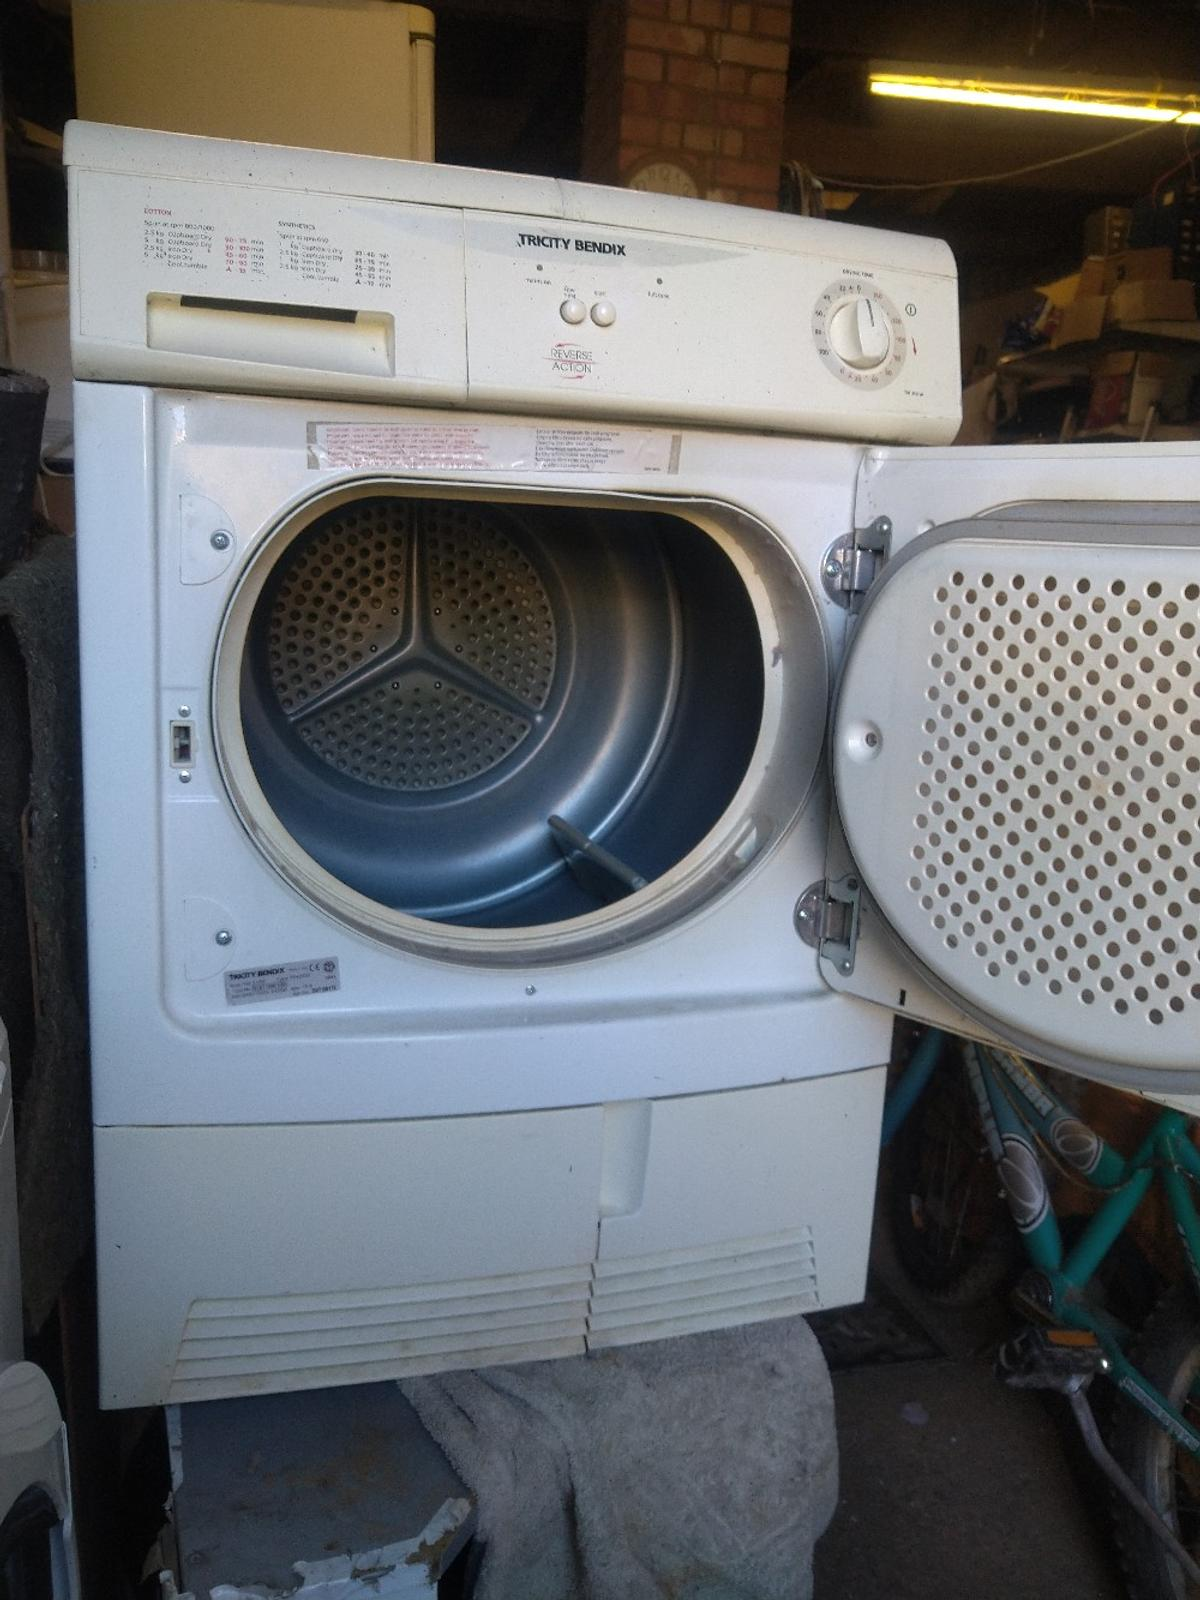 Tricity bendix(made by and same as zanussi), standered capacity of 6kg, condenser drying type, given a good service and cleaned thoroughly so working and drying smoothly,very low price for a condenser, , the top cover bear a long crack from heat,, free northampton delivery.